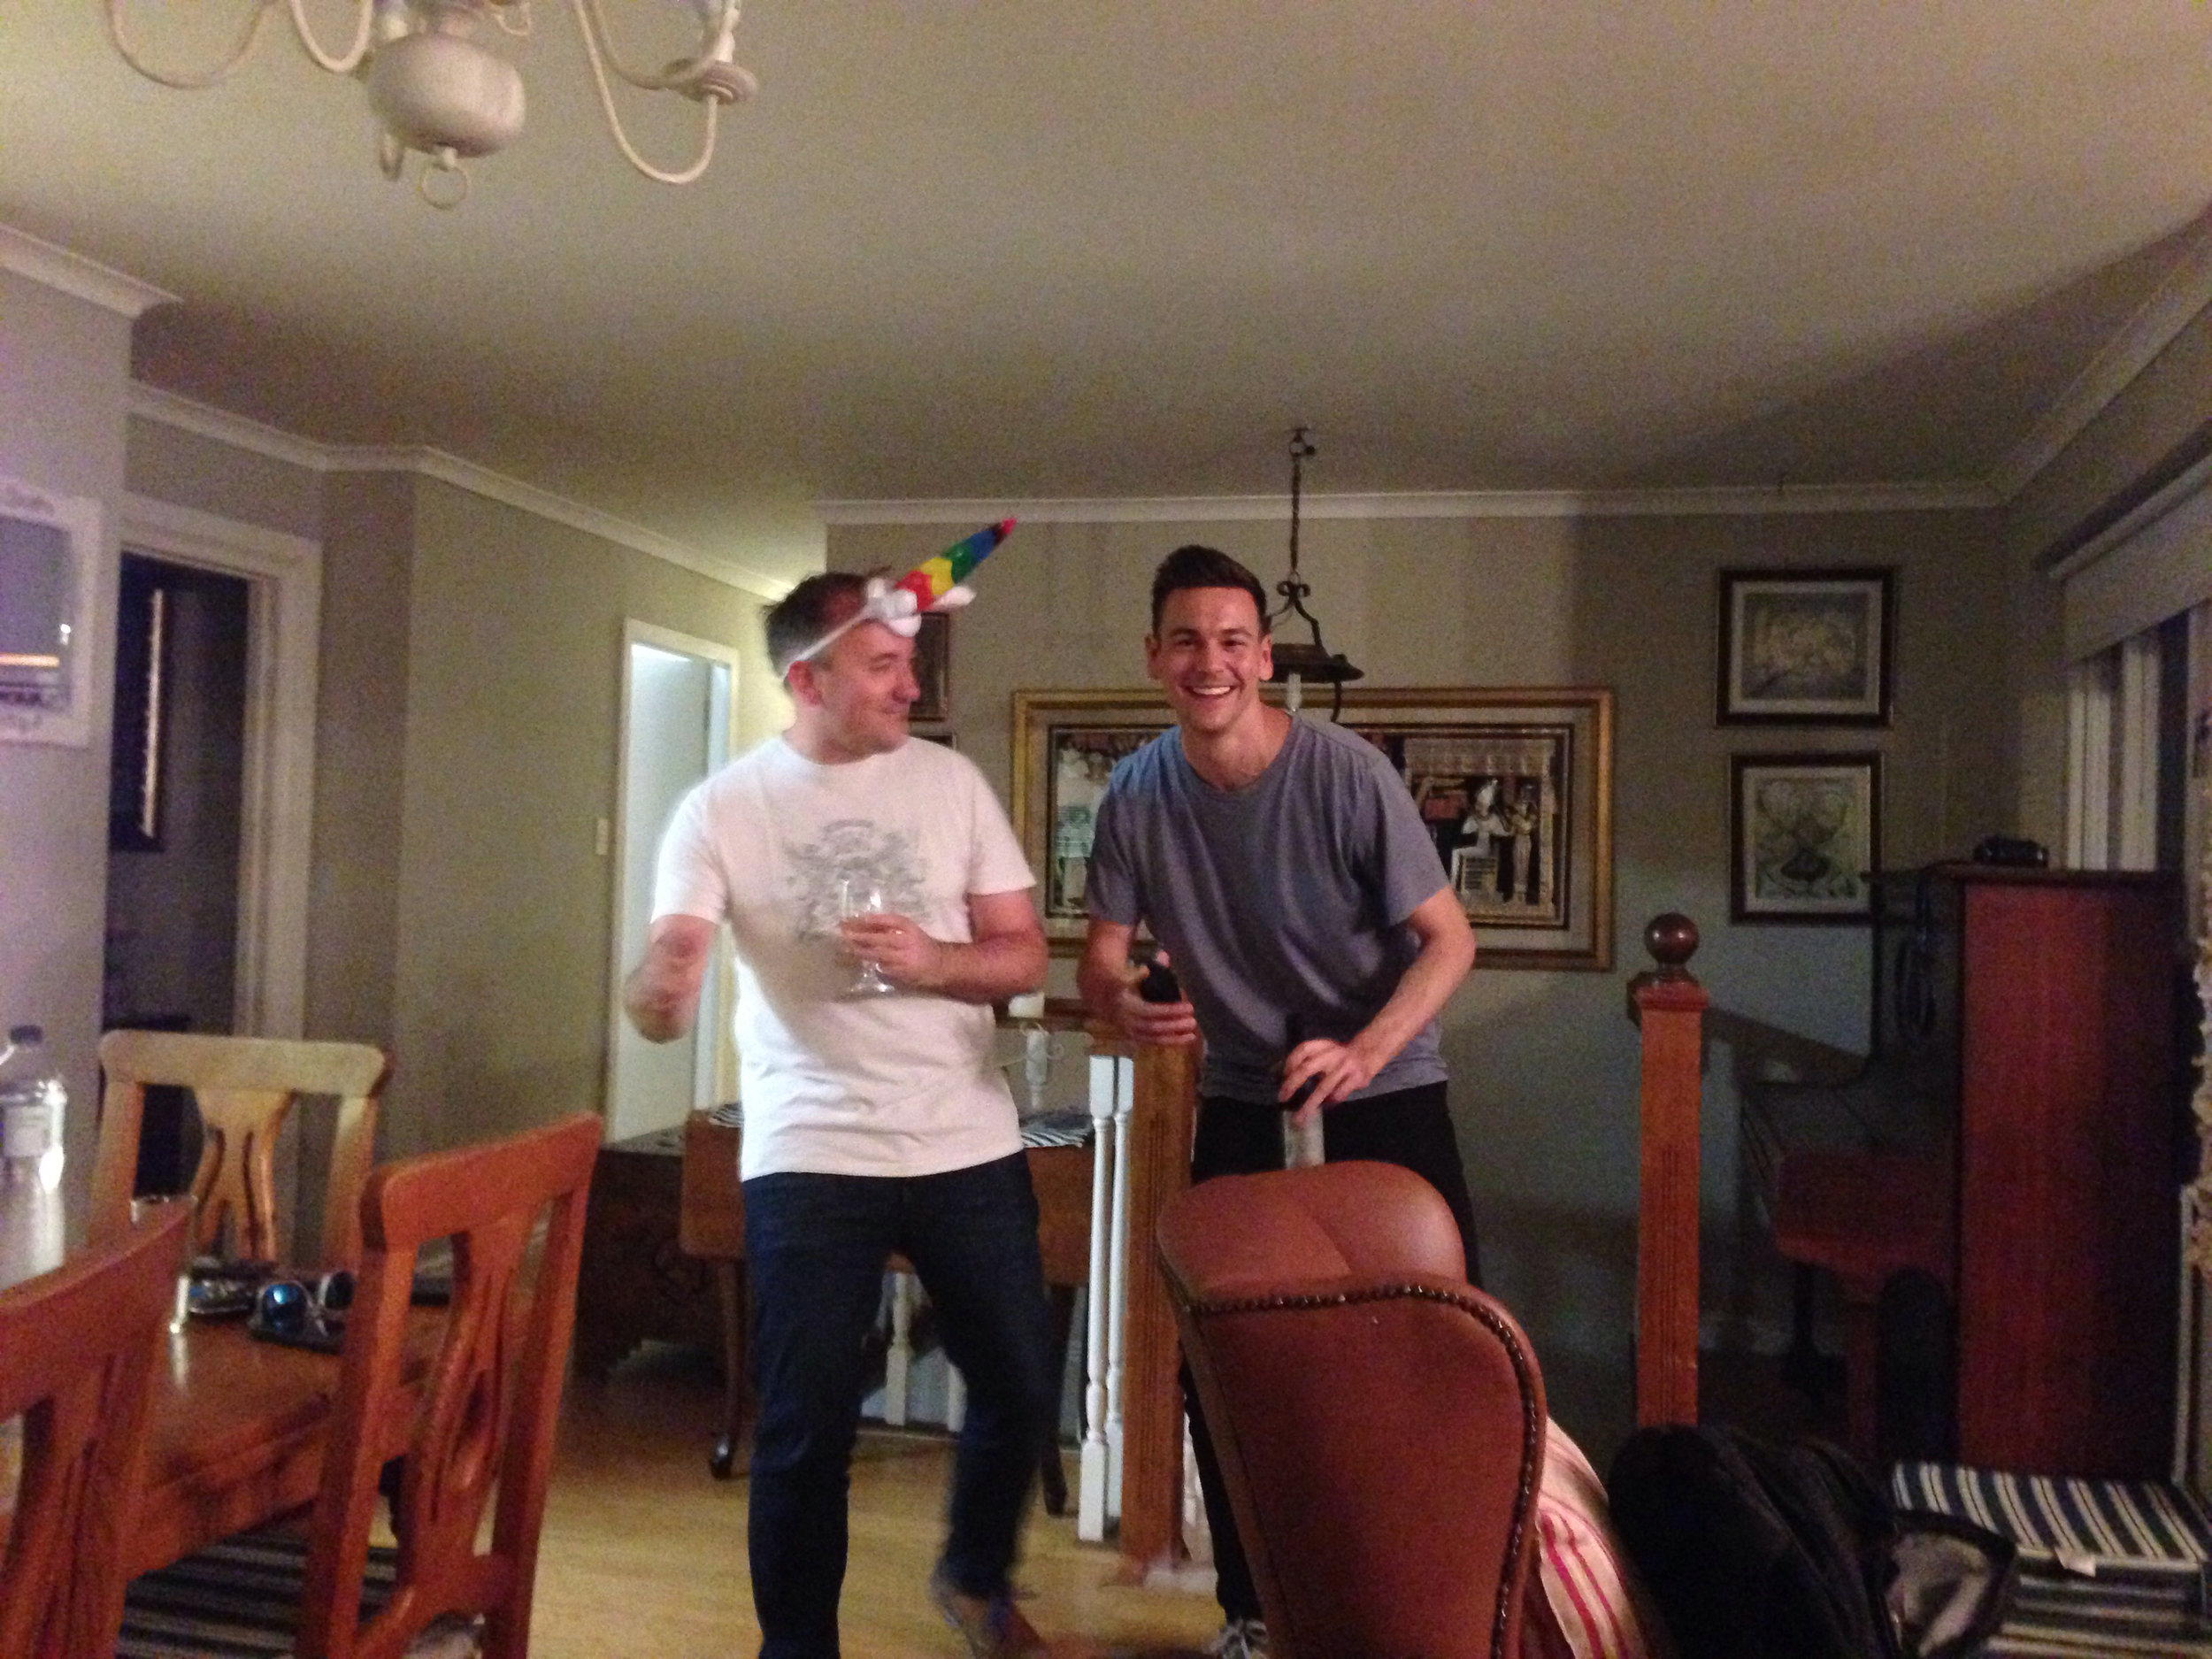 Founders Chris and Jake do the unicorn dance of business prosperity.